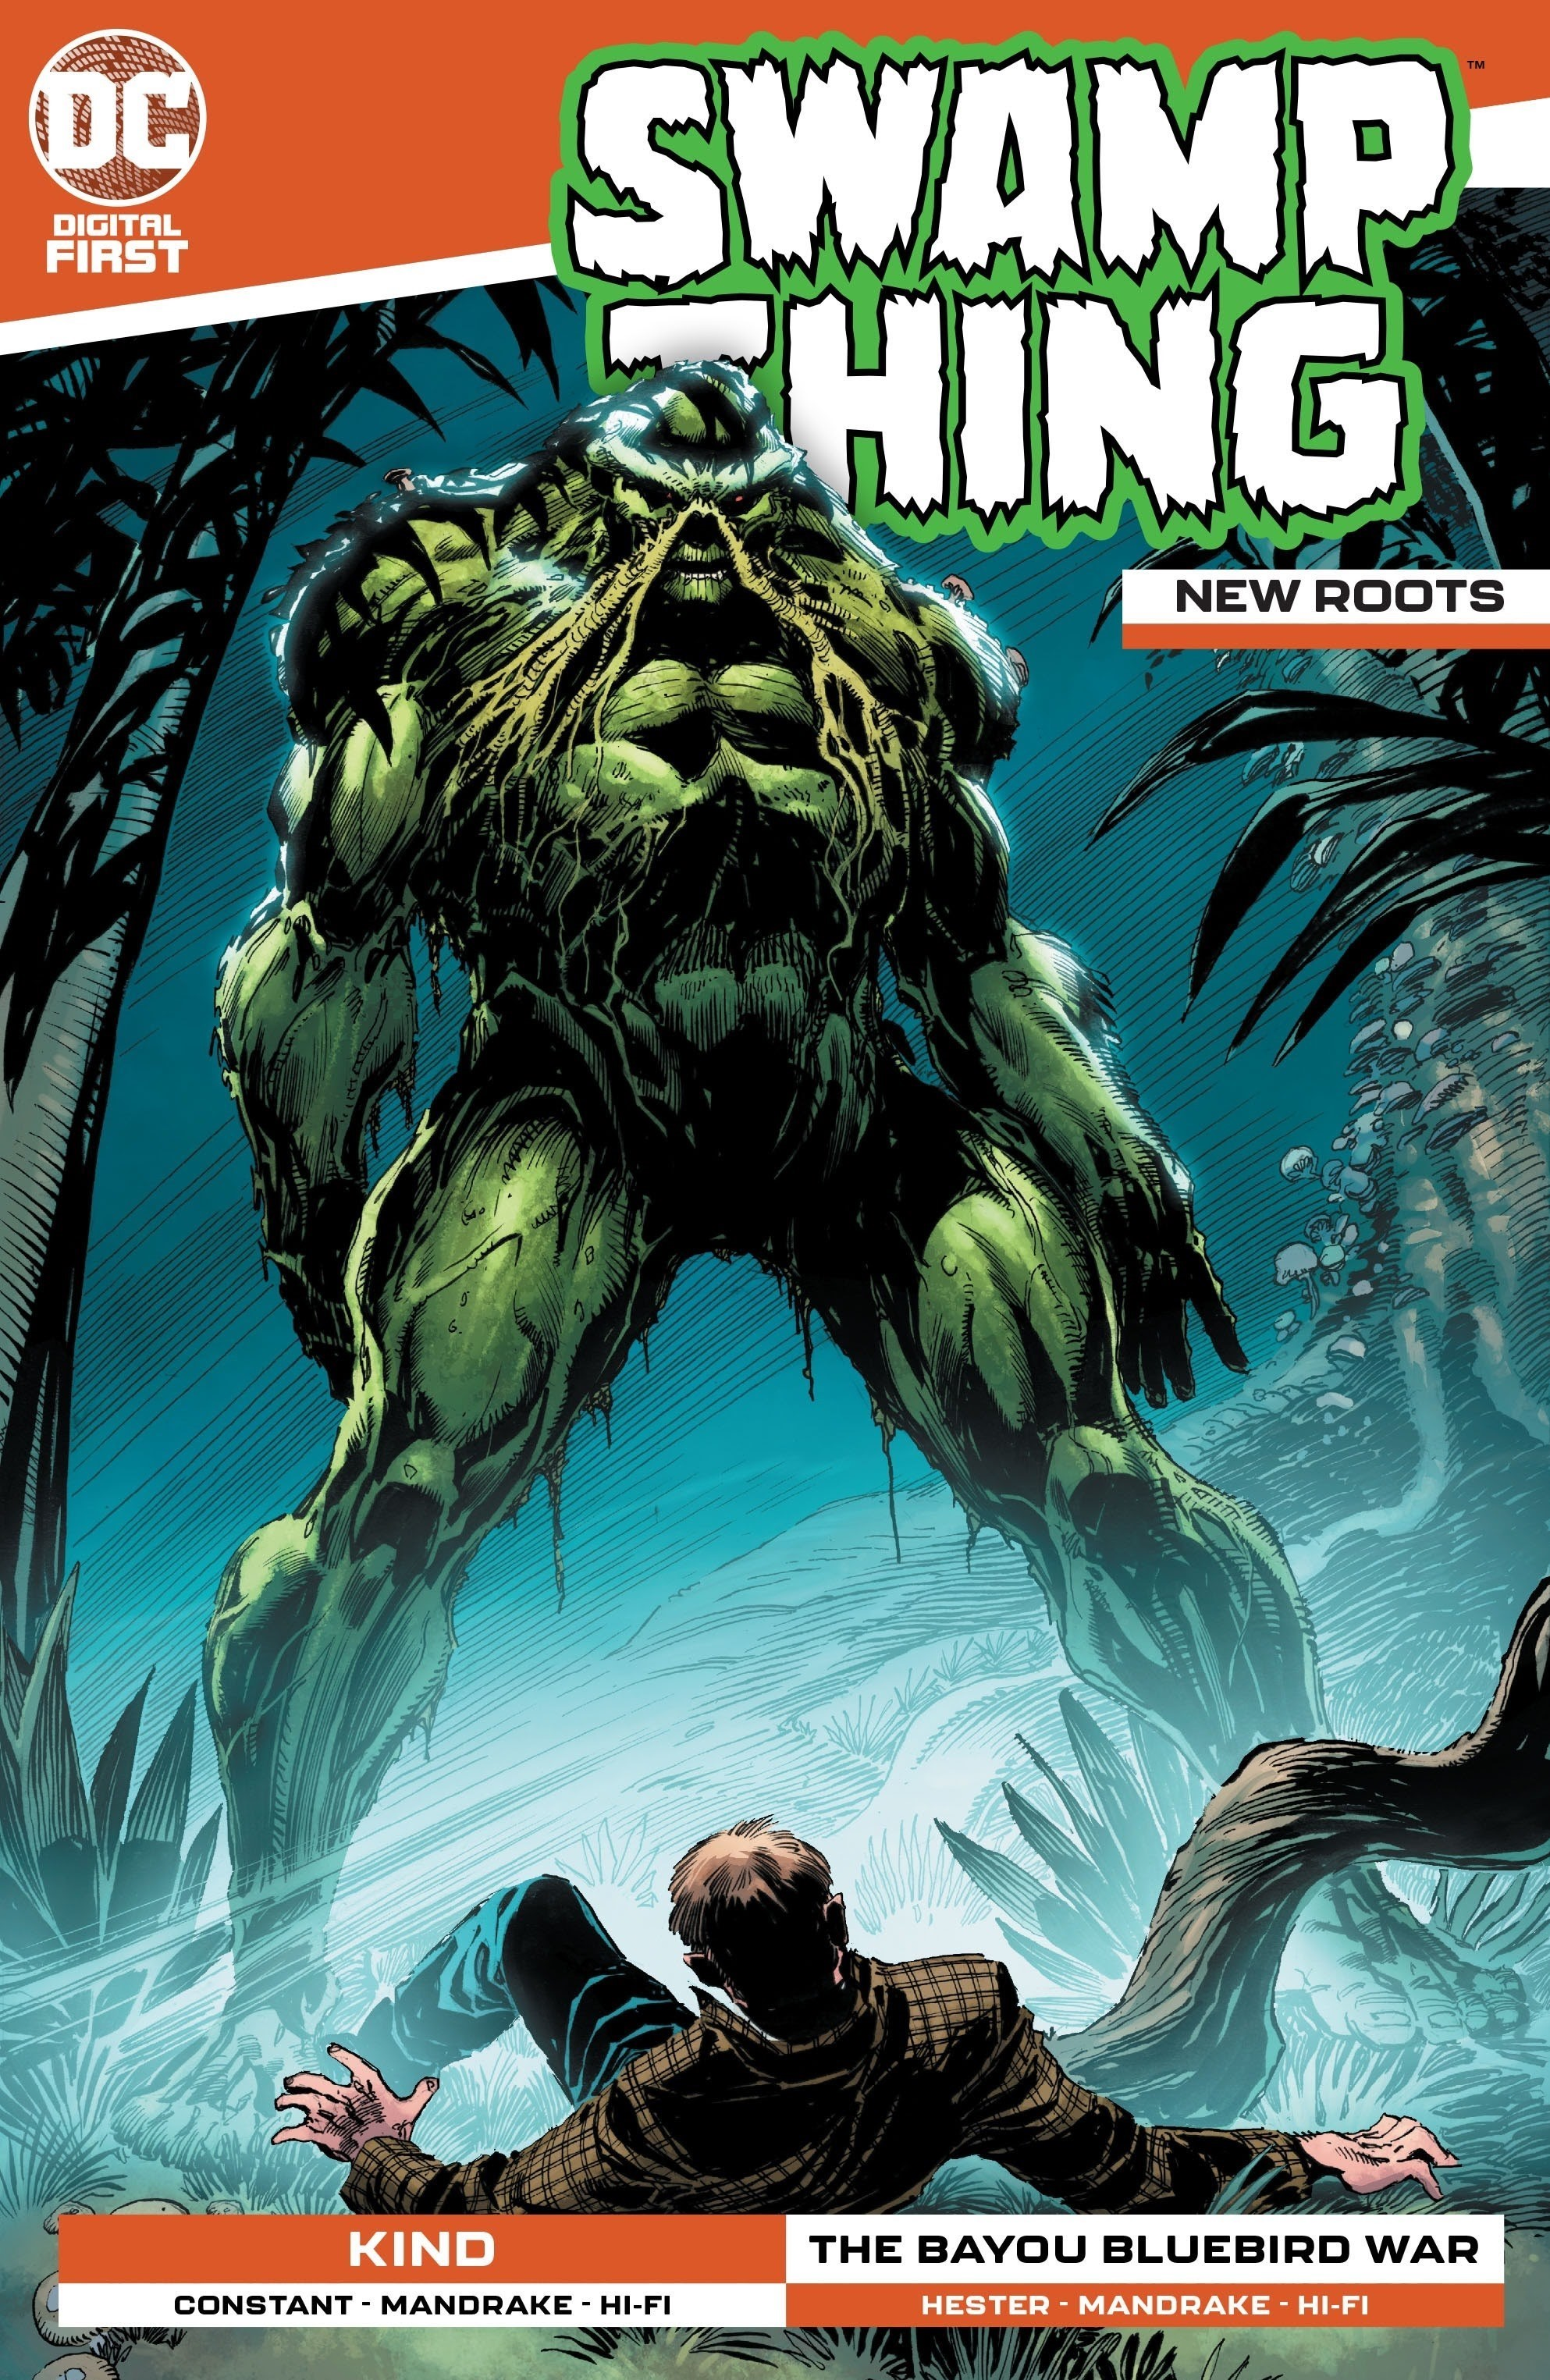 Swamp Thing: New Roots Vol 1 9 (Digital)